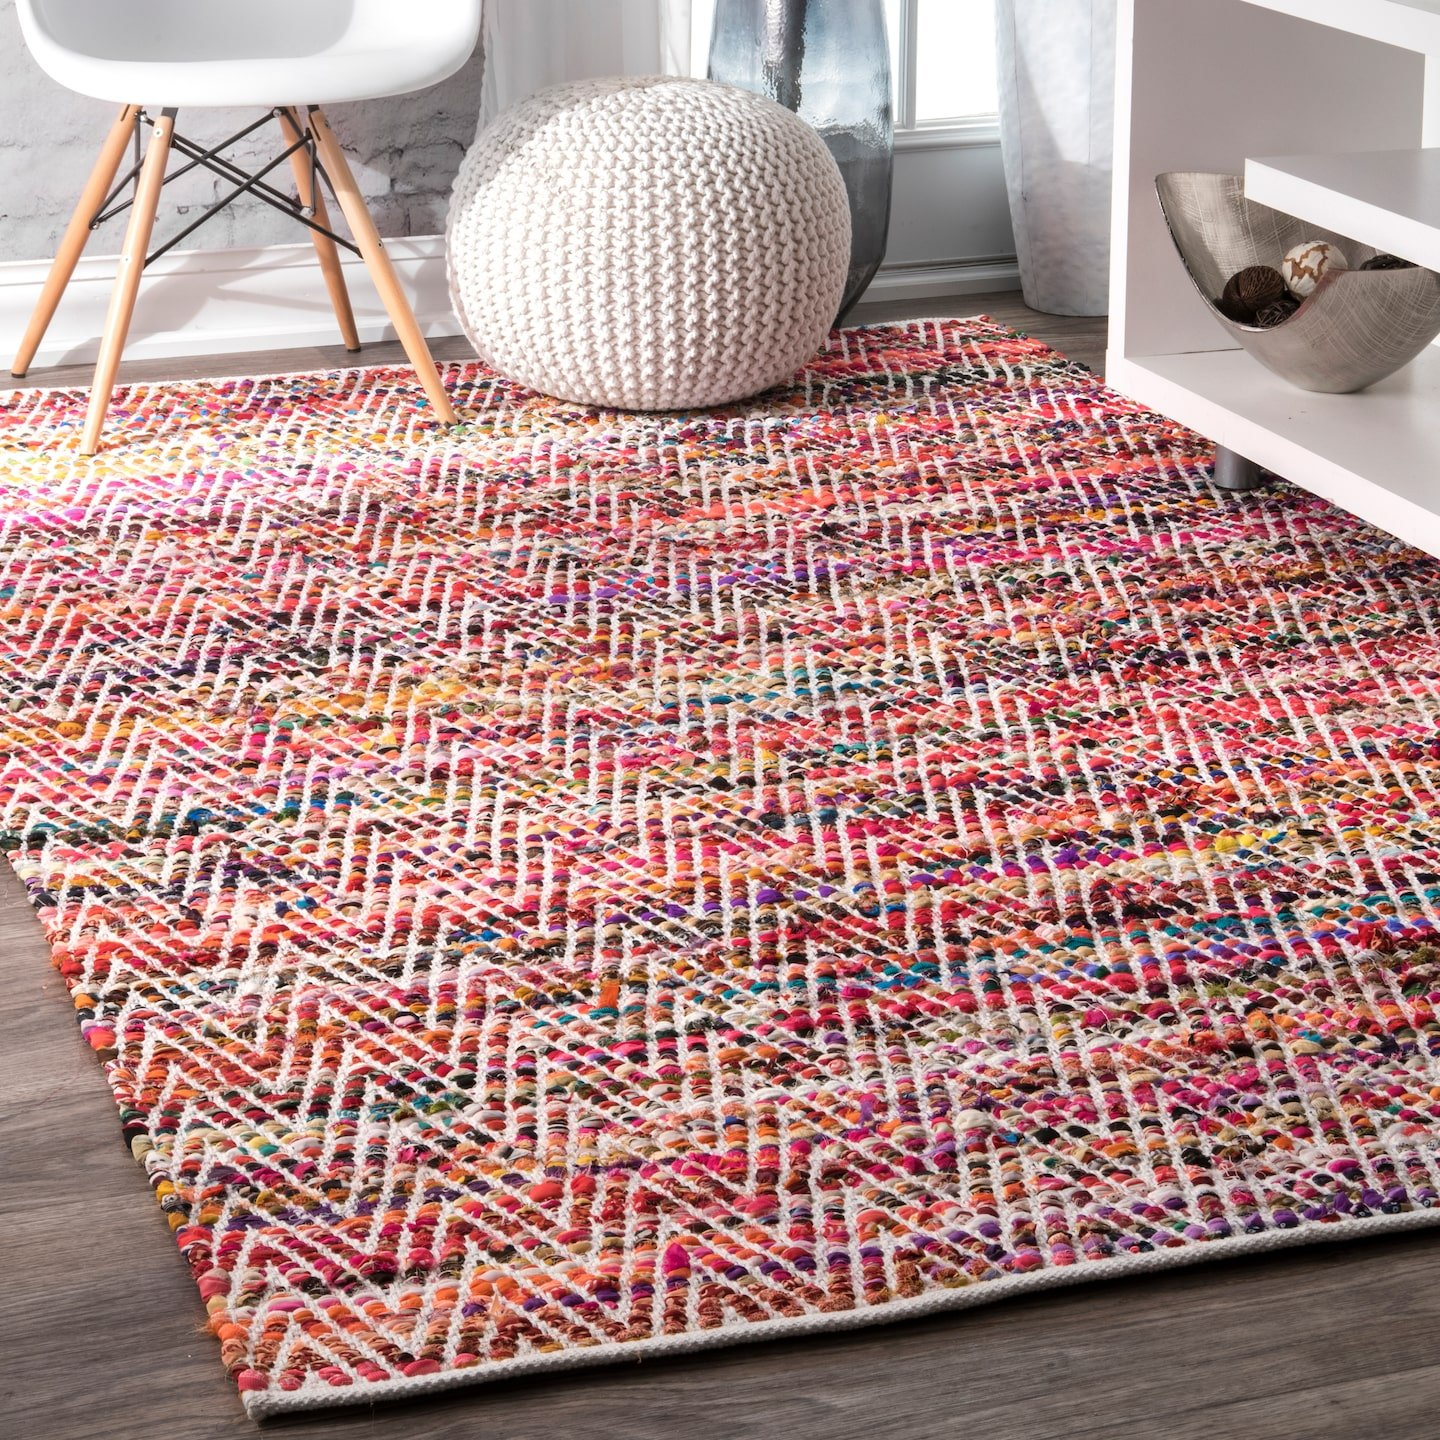 nuLOOM Hand Woven Candy Striped Chevron Area Rugs, 2' x 3', Magenta